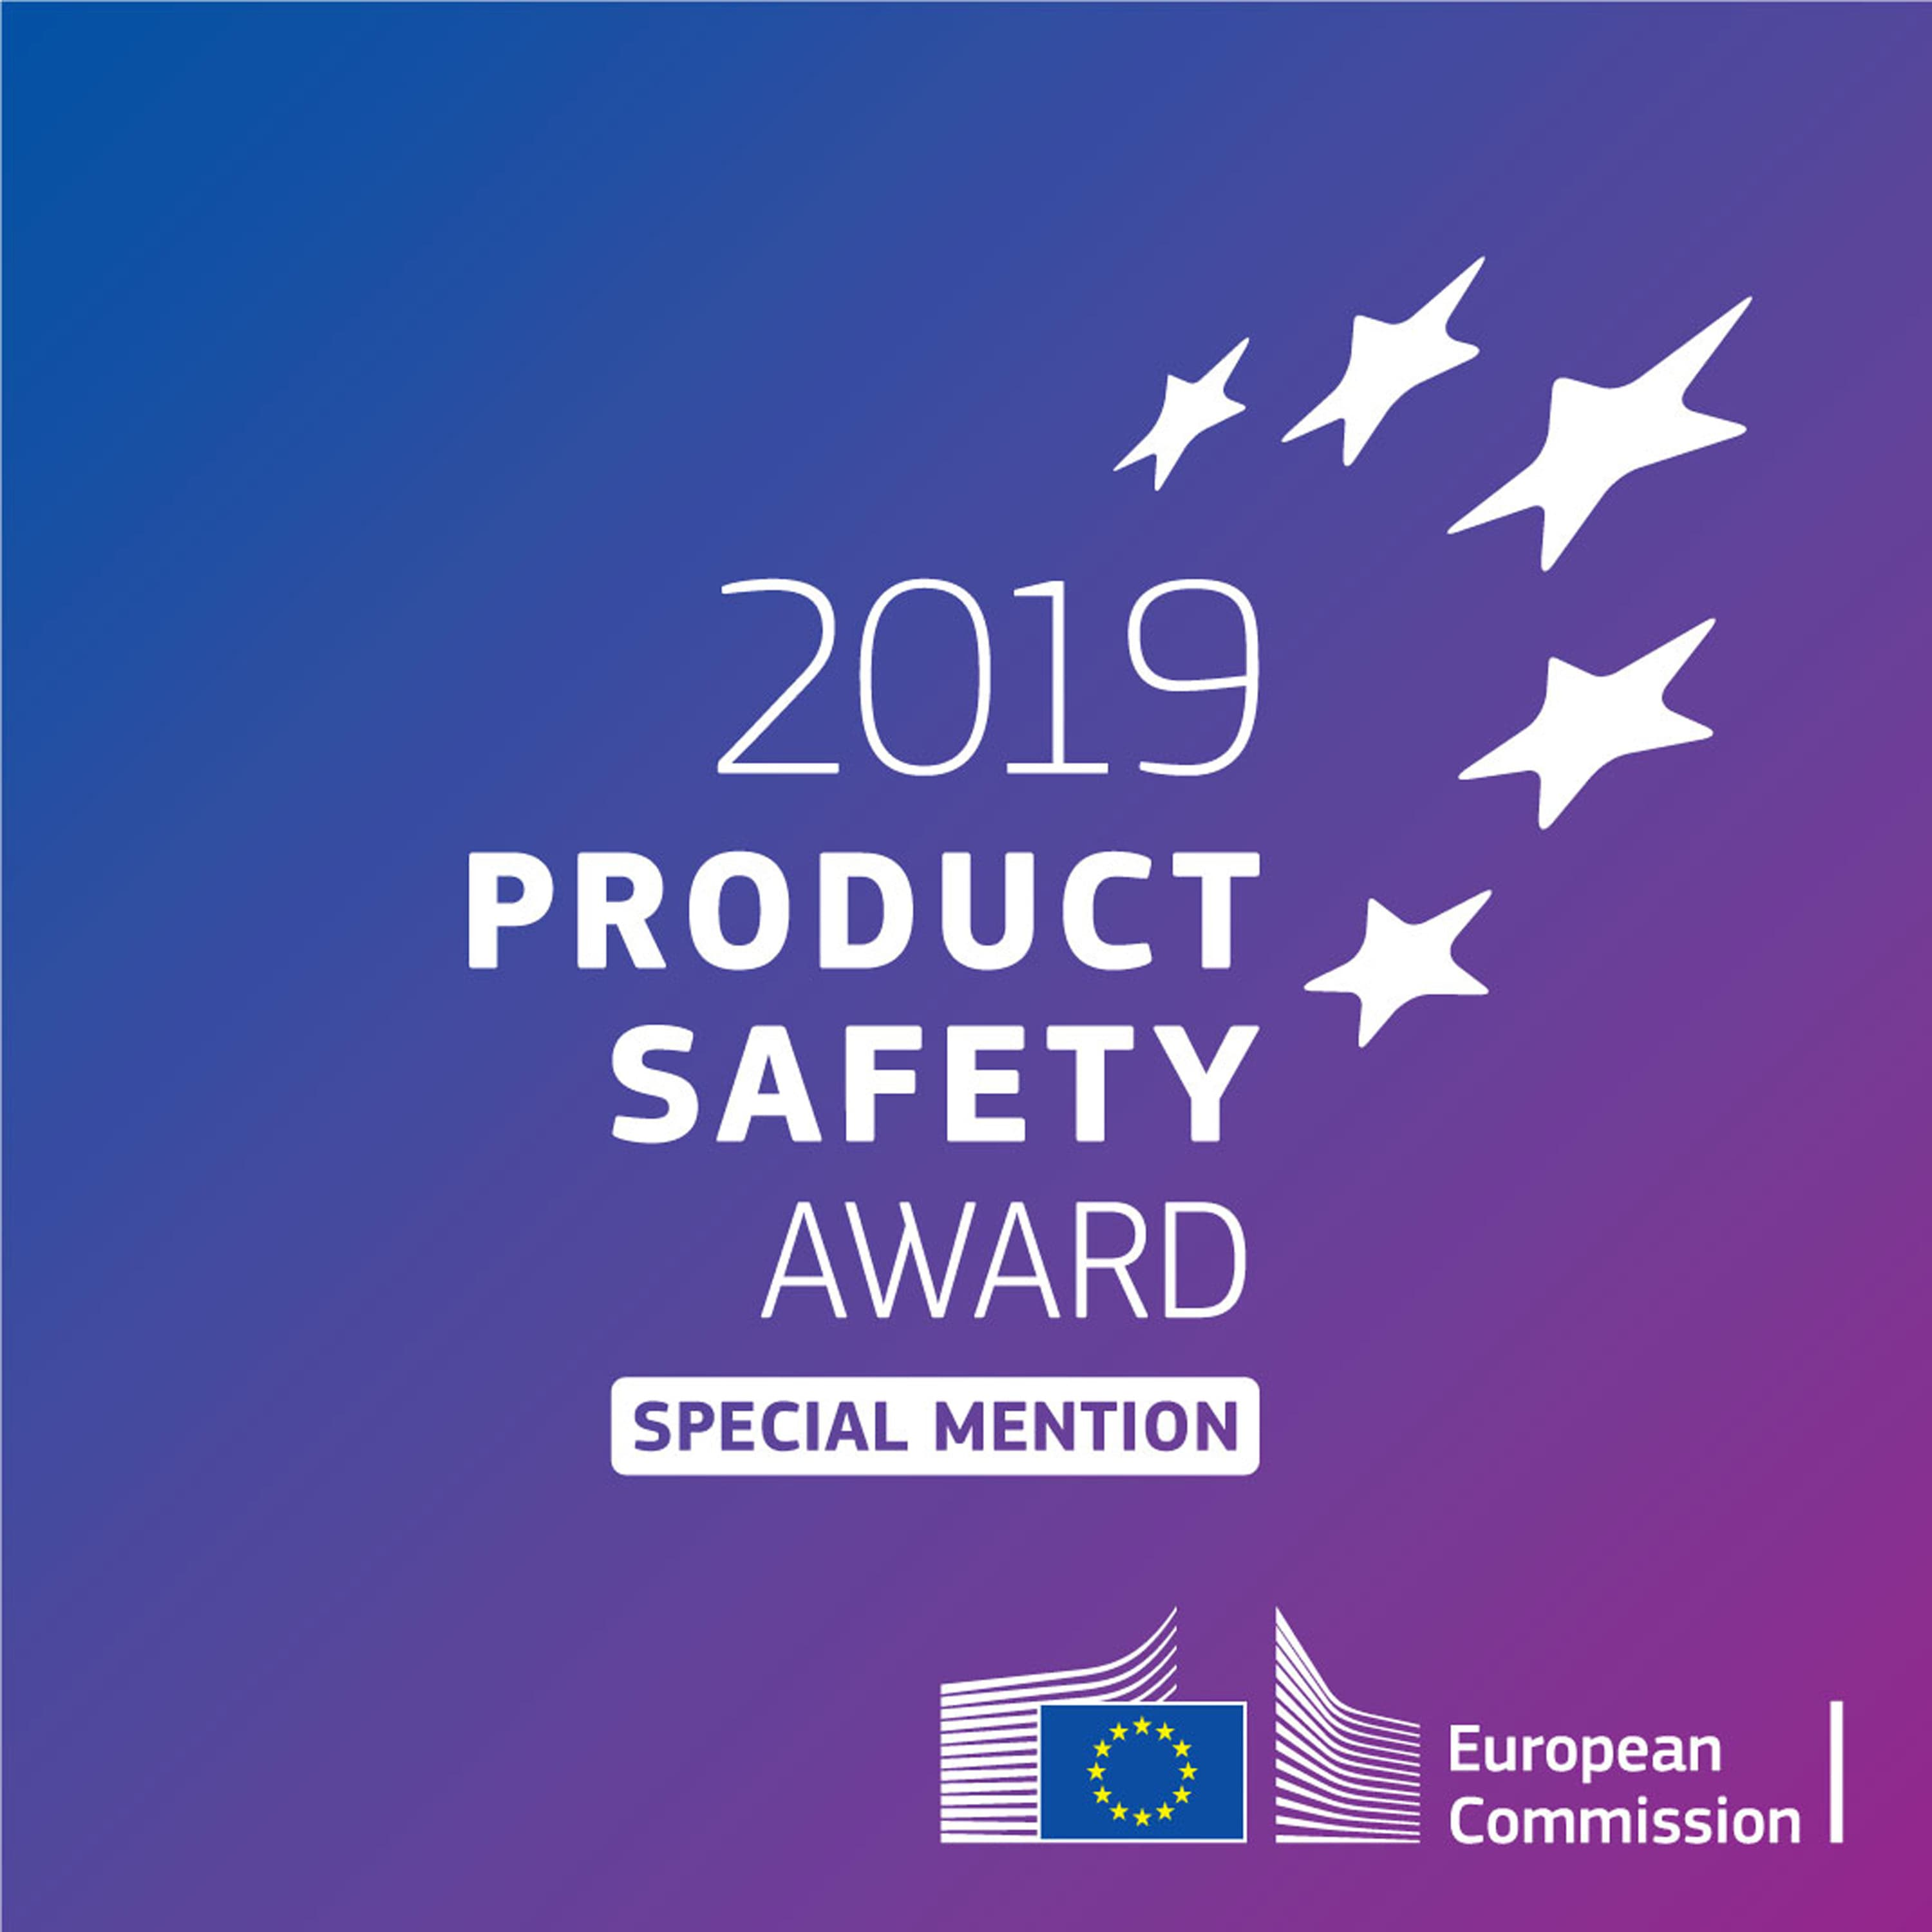 STOLTE OVER EU PRODUCT SAFETY AWARD 2019